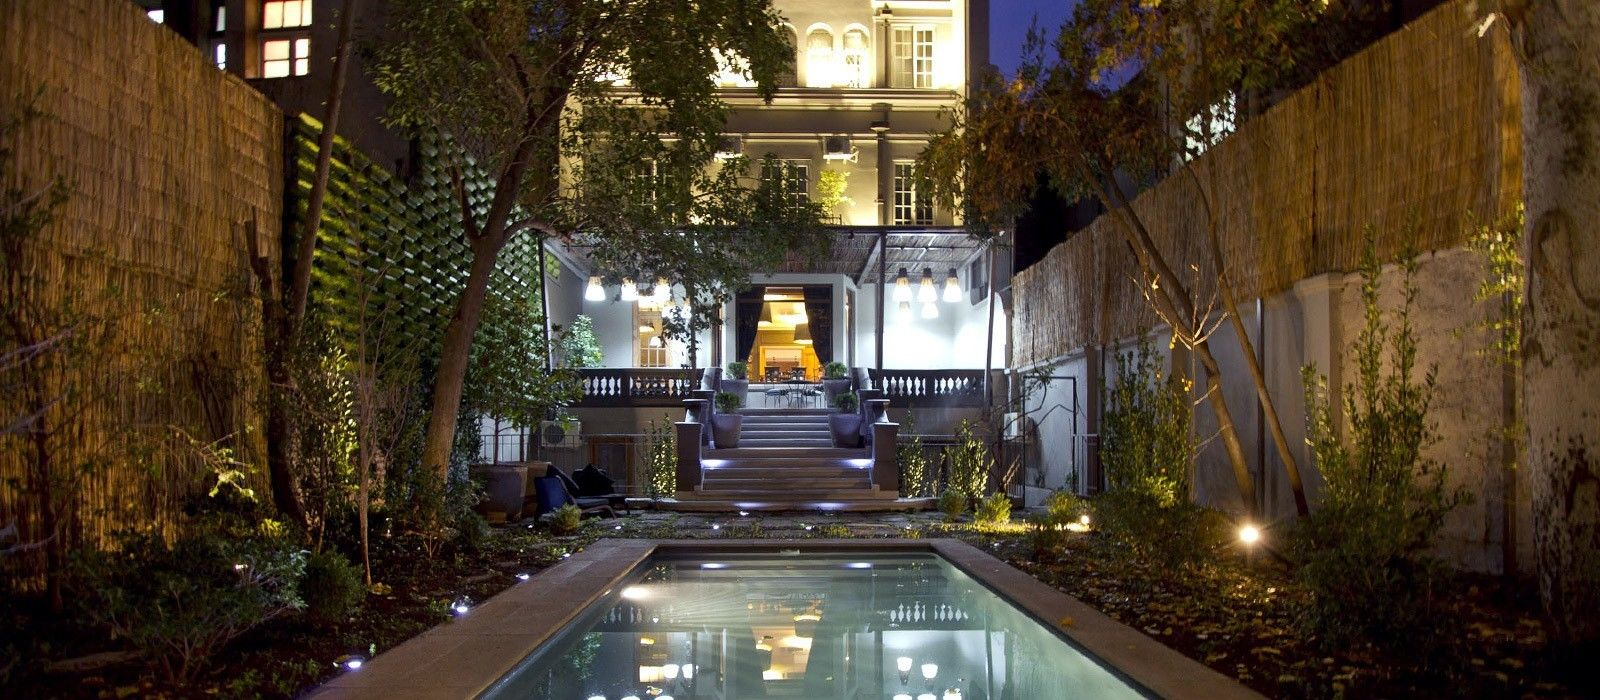 Top 10 unique boutique hotels enchanting travels for Unique small hotels